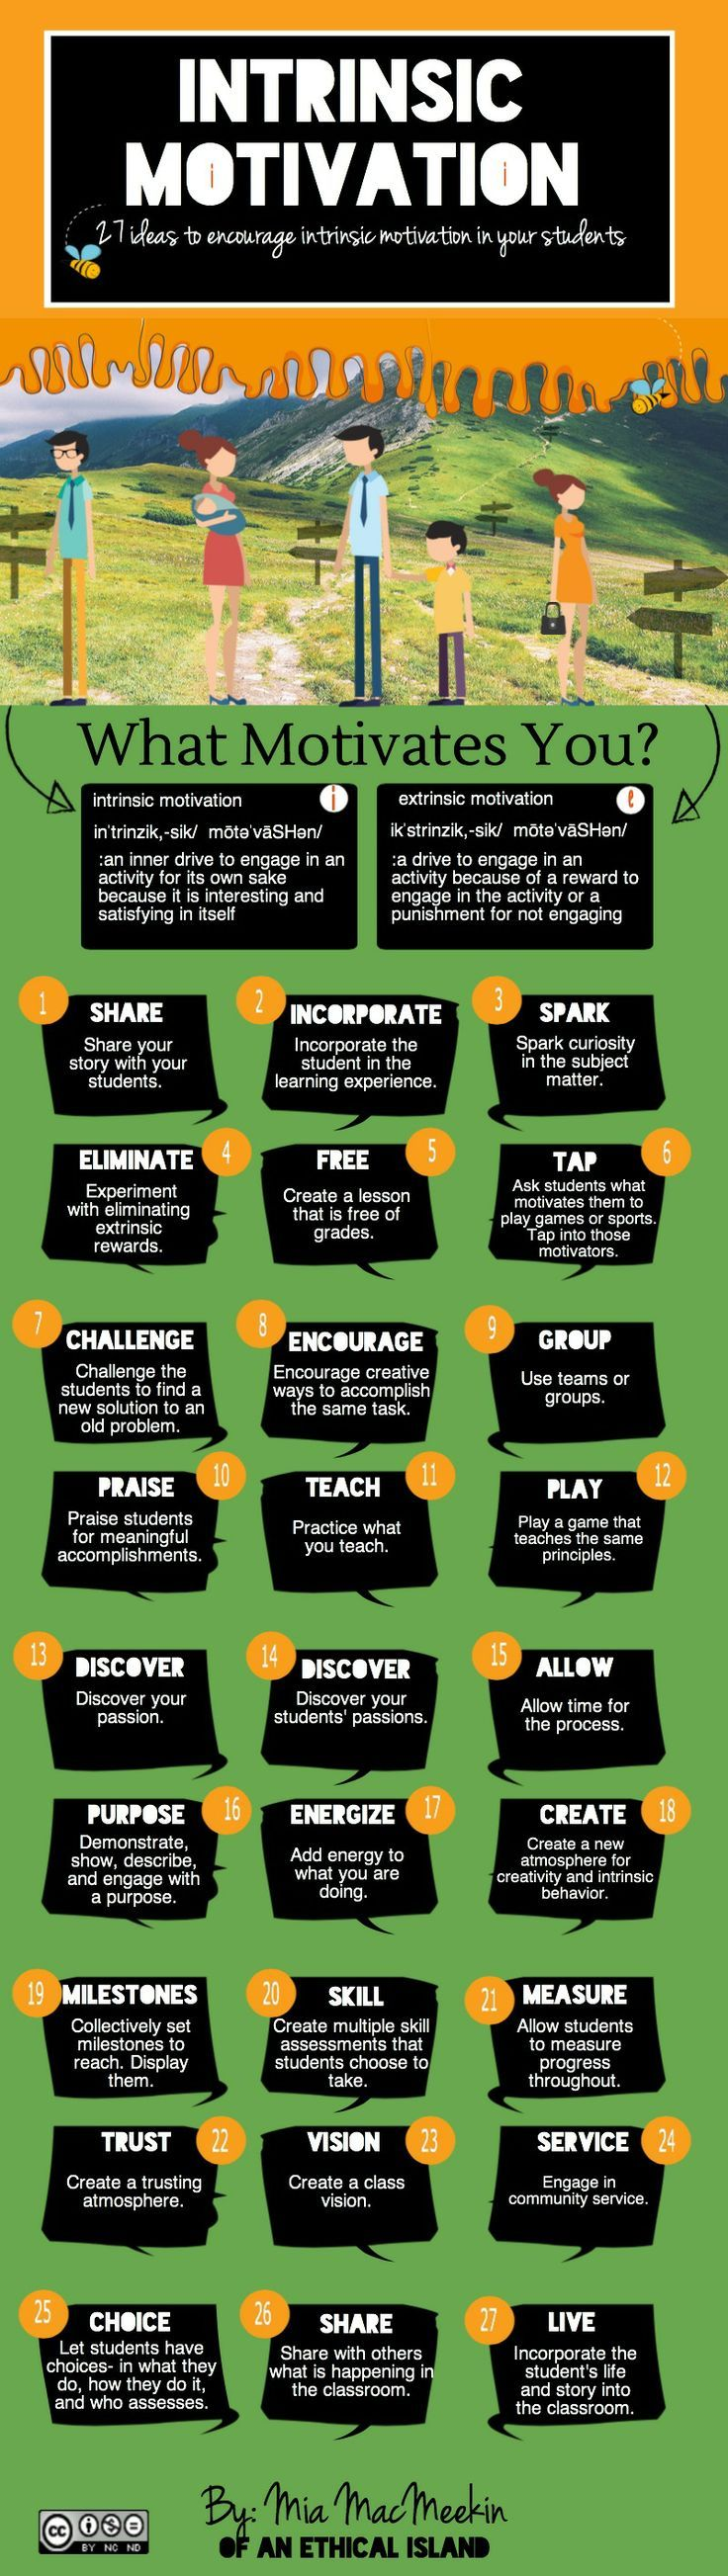 best tips to help you in and outside the classroom images on